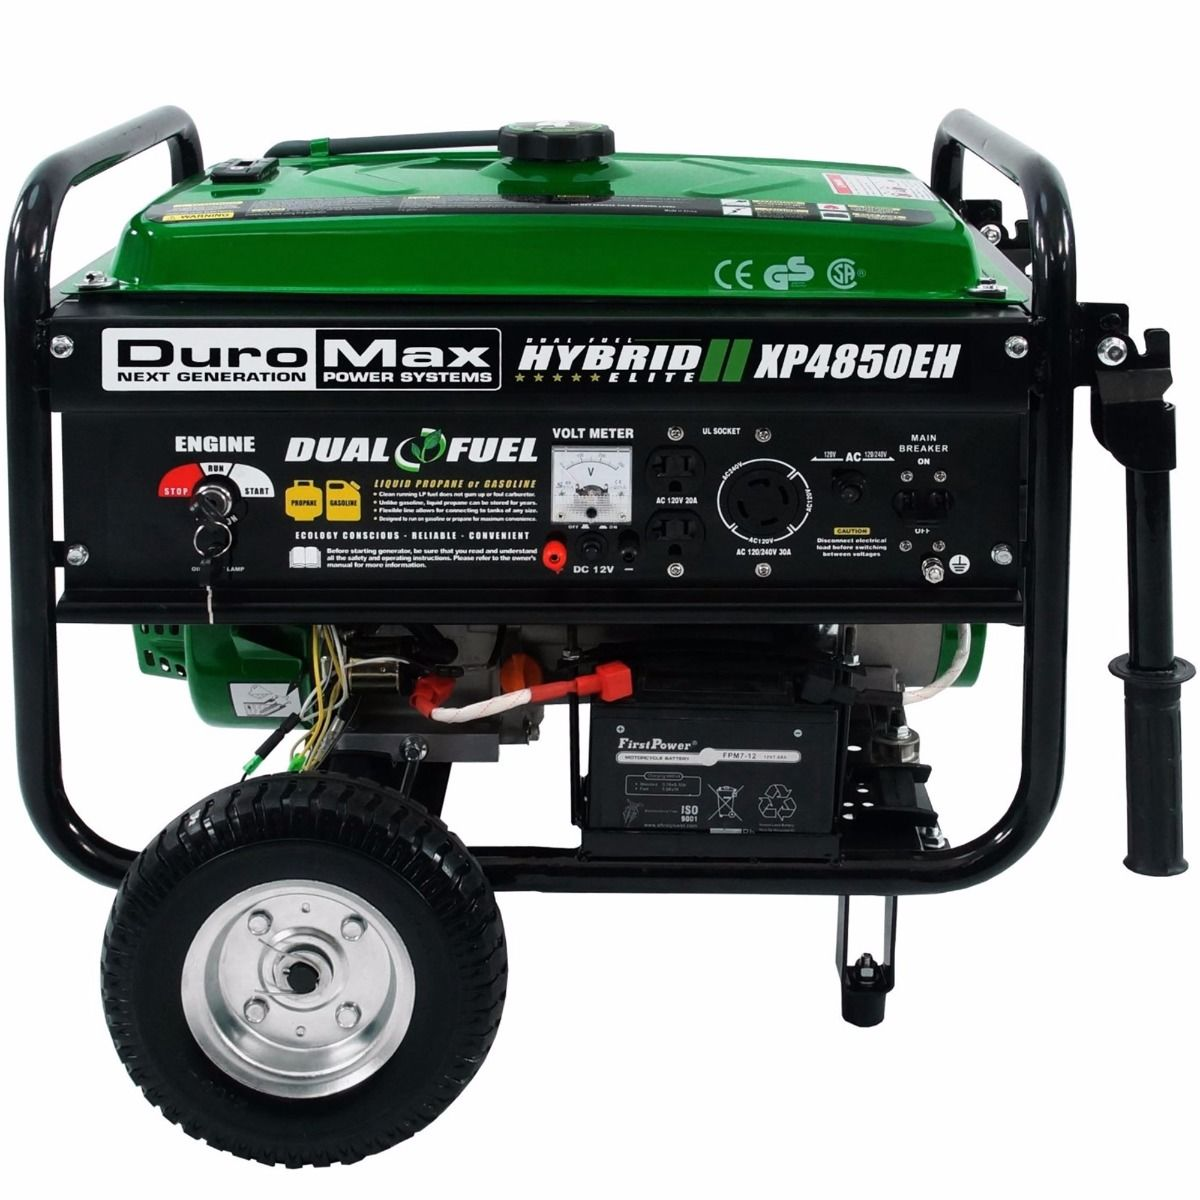 DuroMax XP4850EH 4850 watt Dual Fuel Hybrid w/ Electric Start-Battery  included-120V/240V 30 Amp Twist Lock Receptacles-Low oil shut-off Free  Shipping